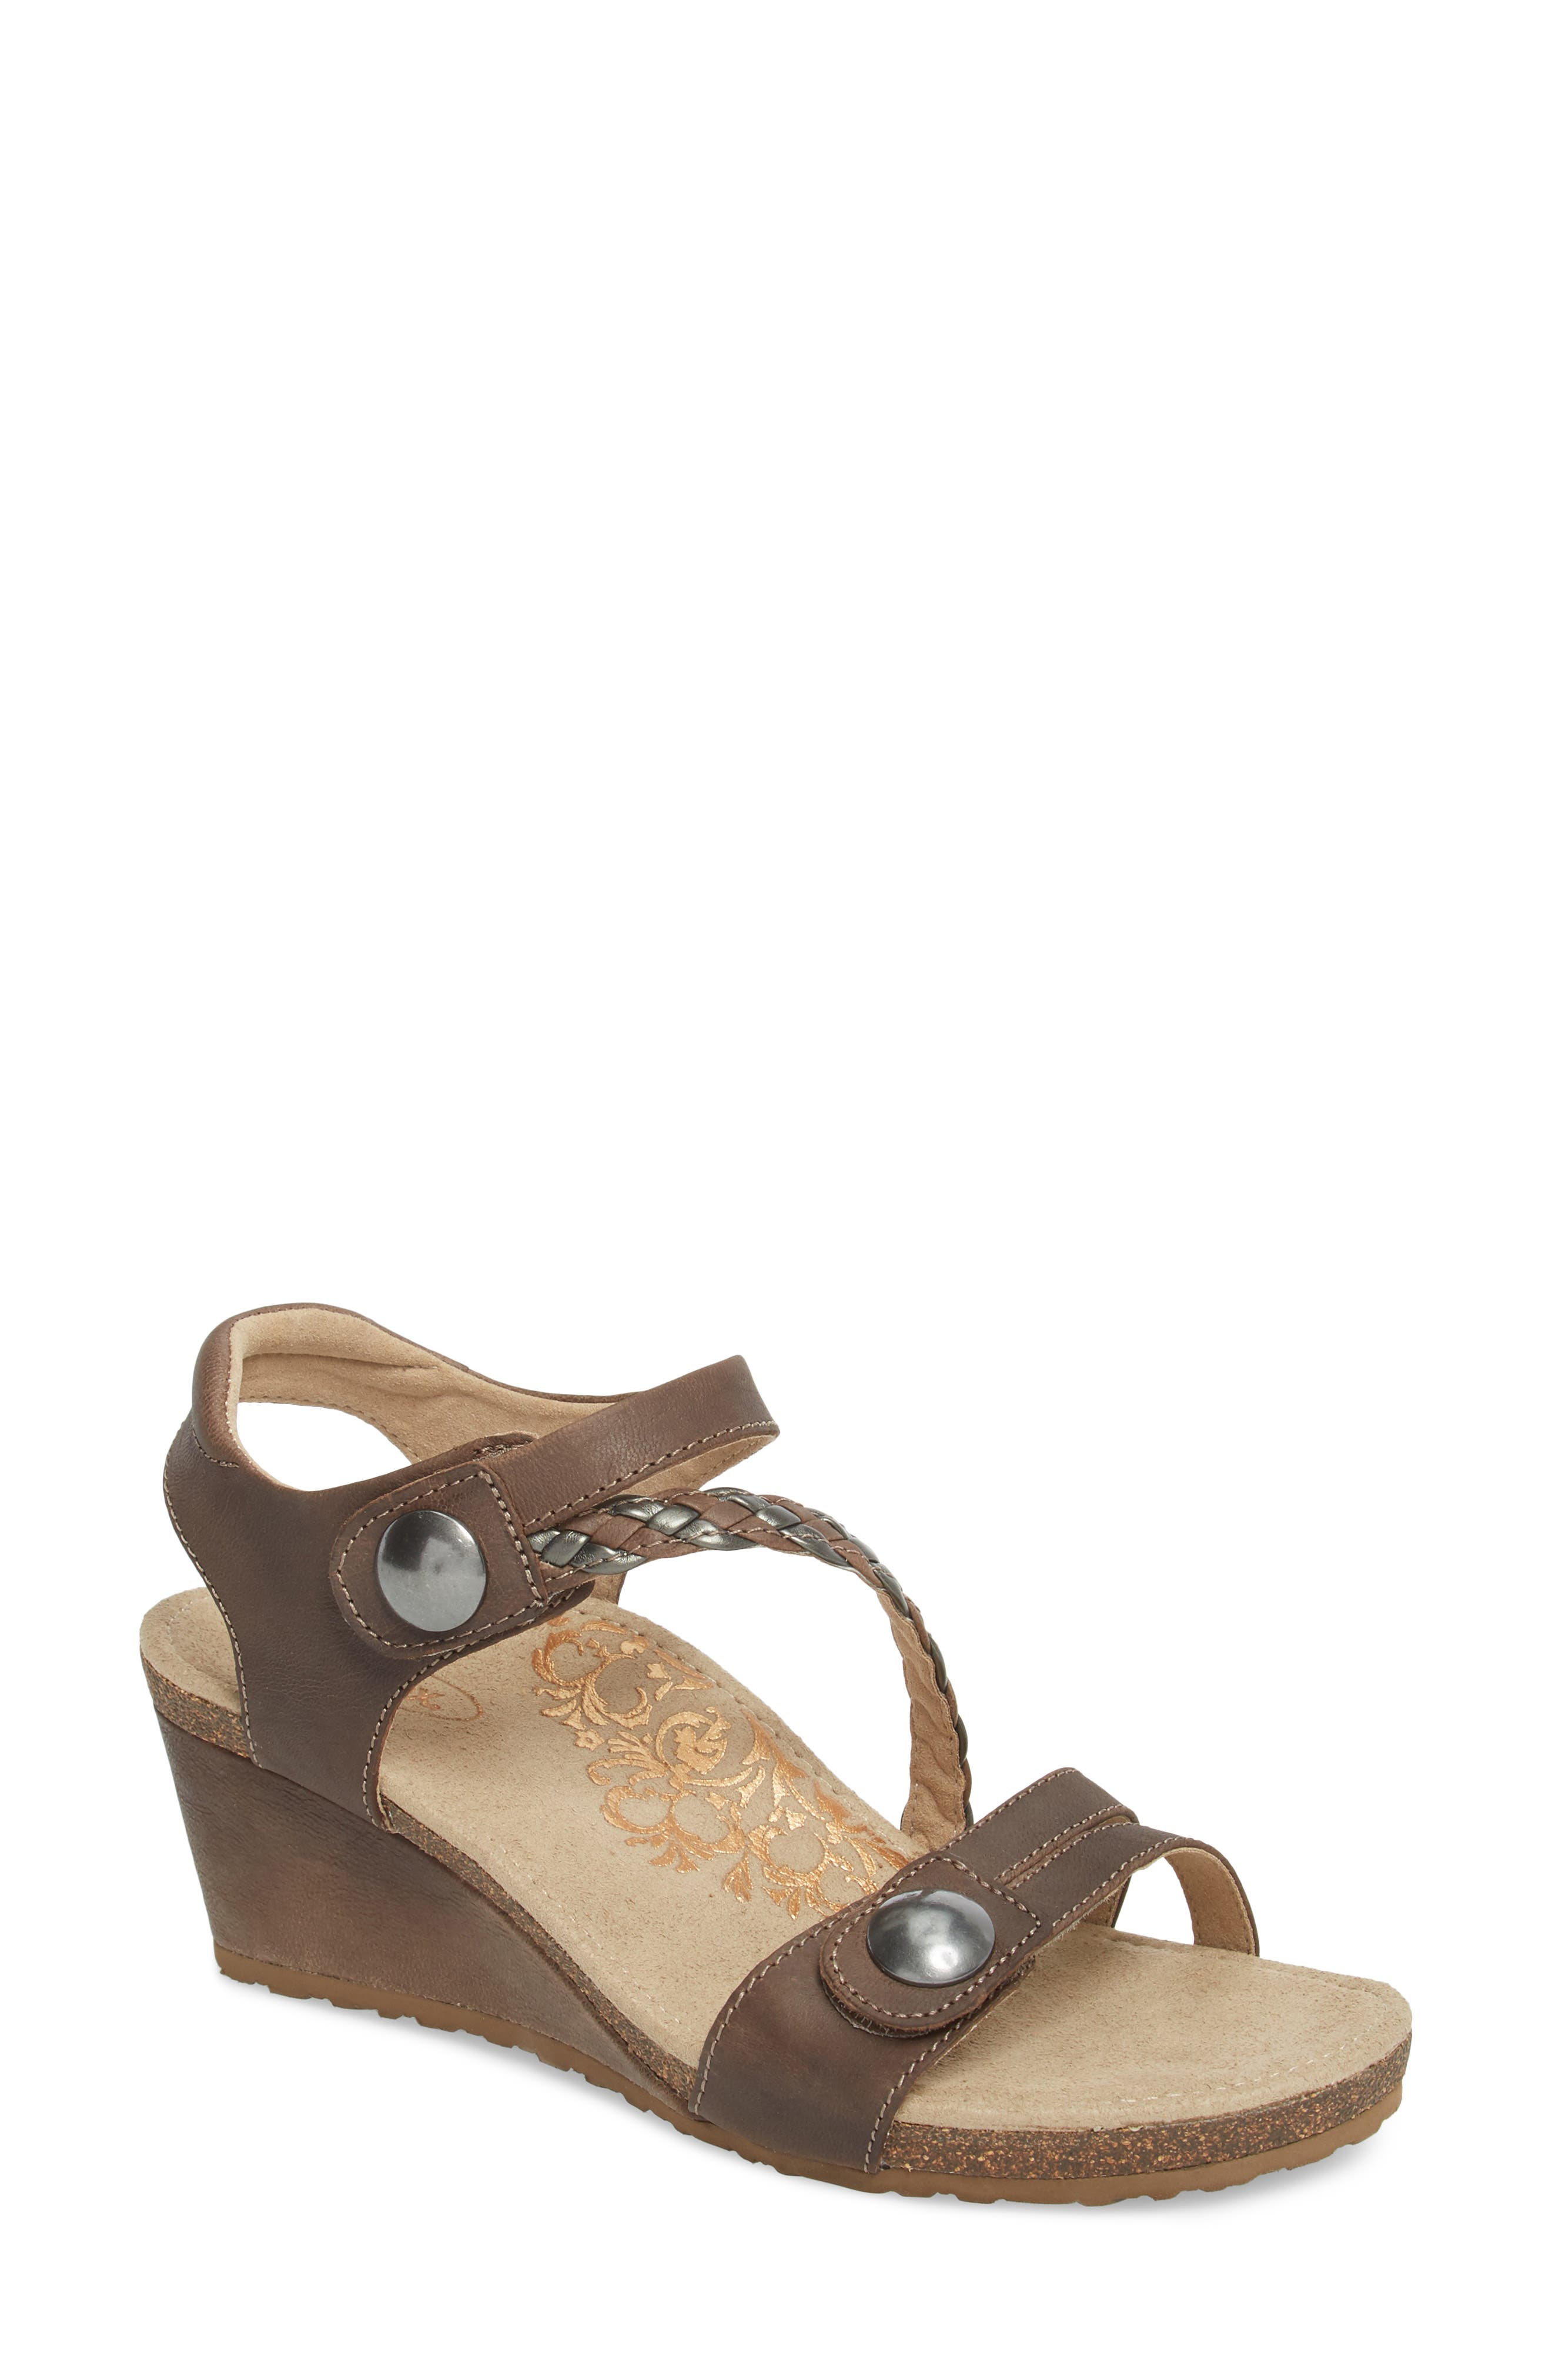 AETREX 'Naya' Wedge Sandal, Main, color, STONE LEATHER